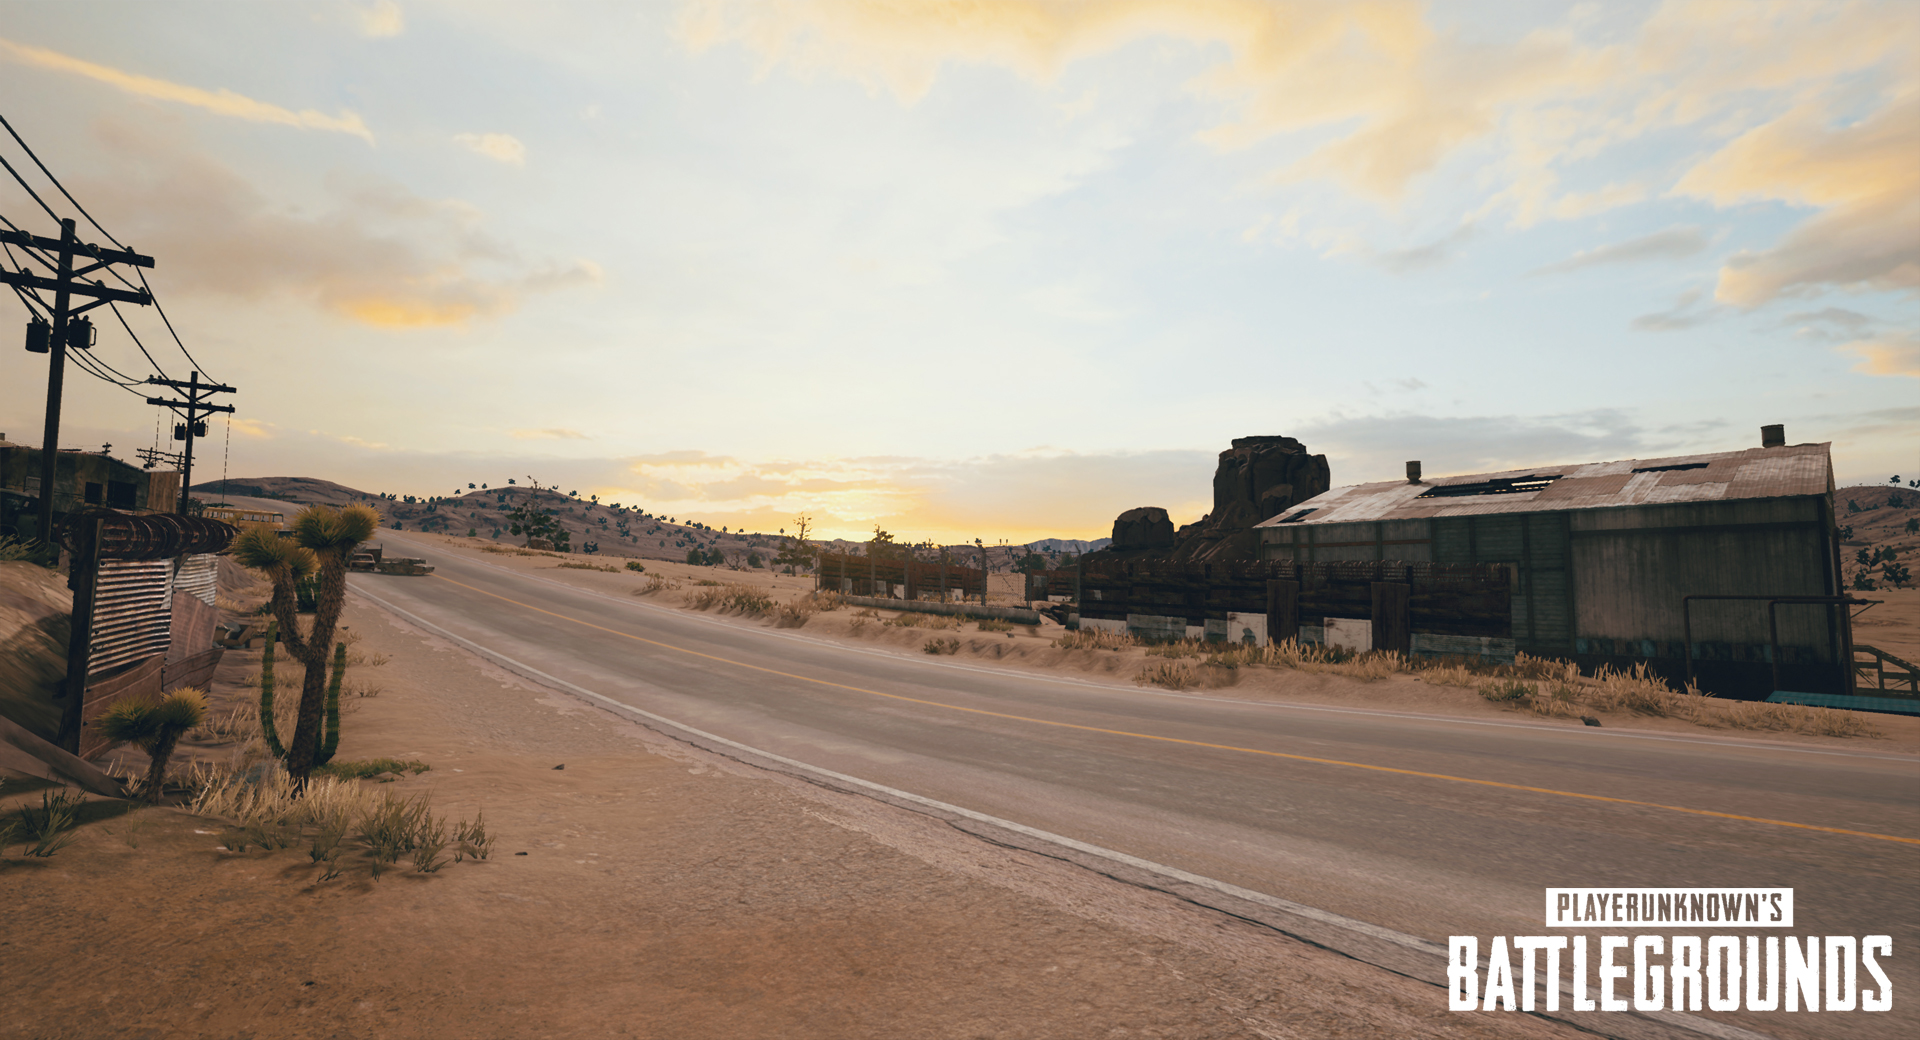 playerunknowns battlegrounds nvidia desert map screenshot 005 - First Five Screenshots Of PUBG's Desert Map